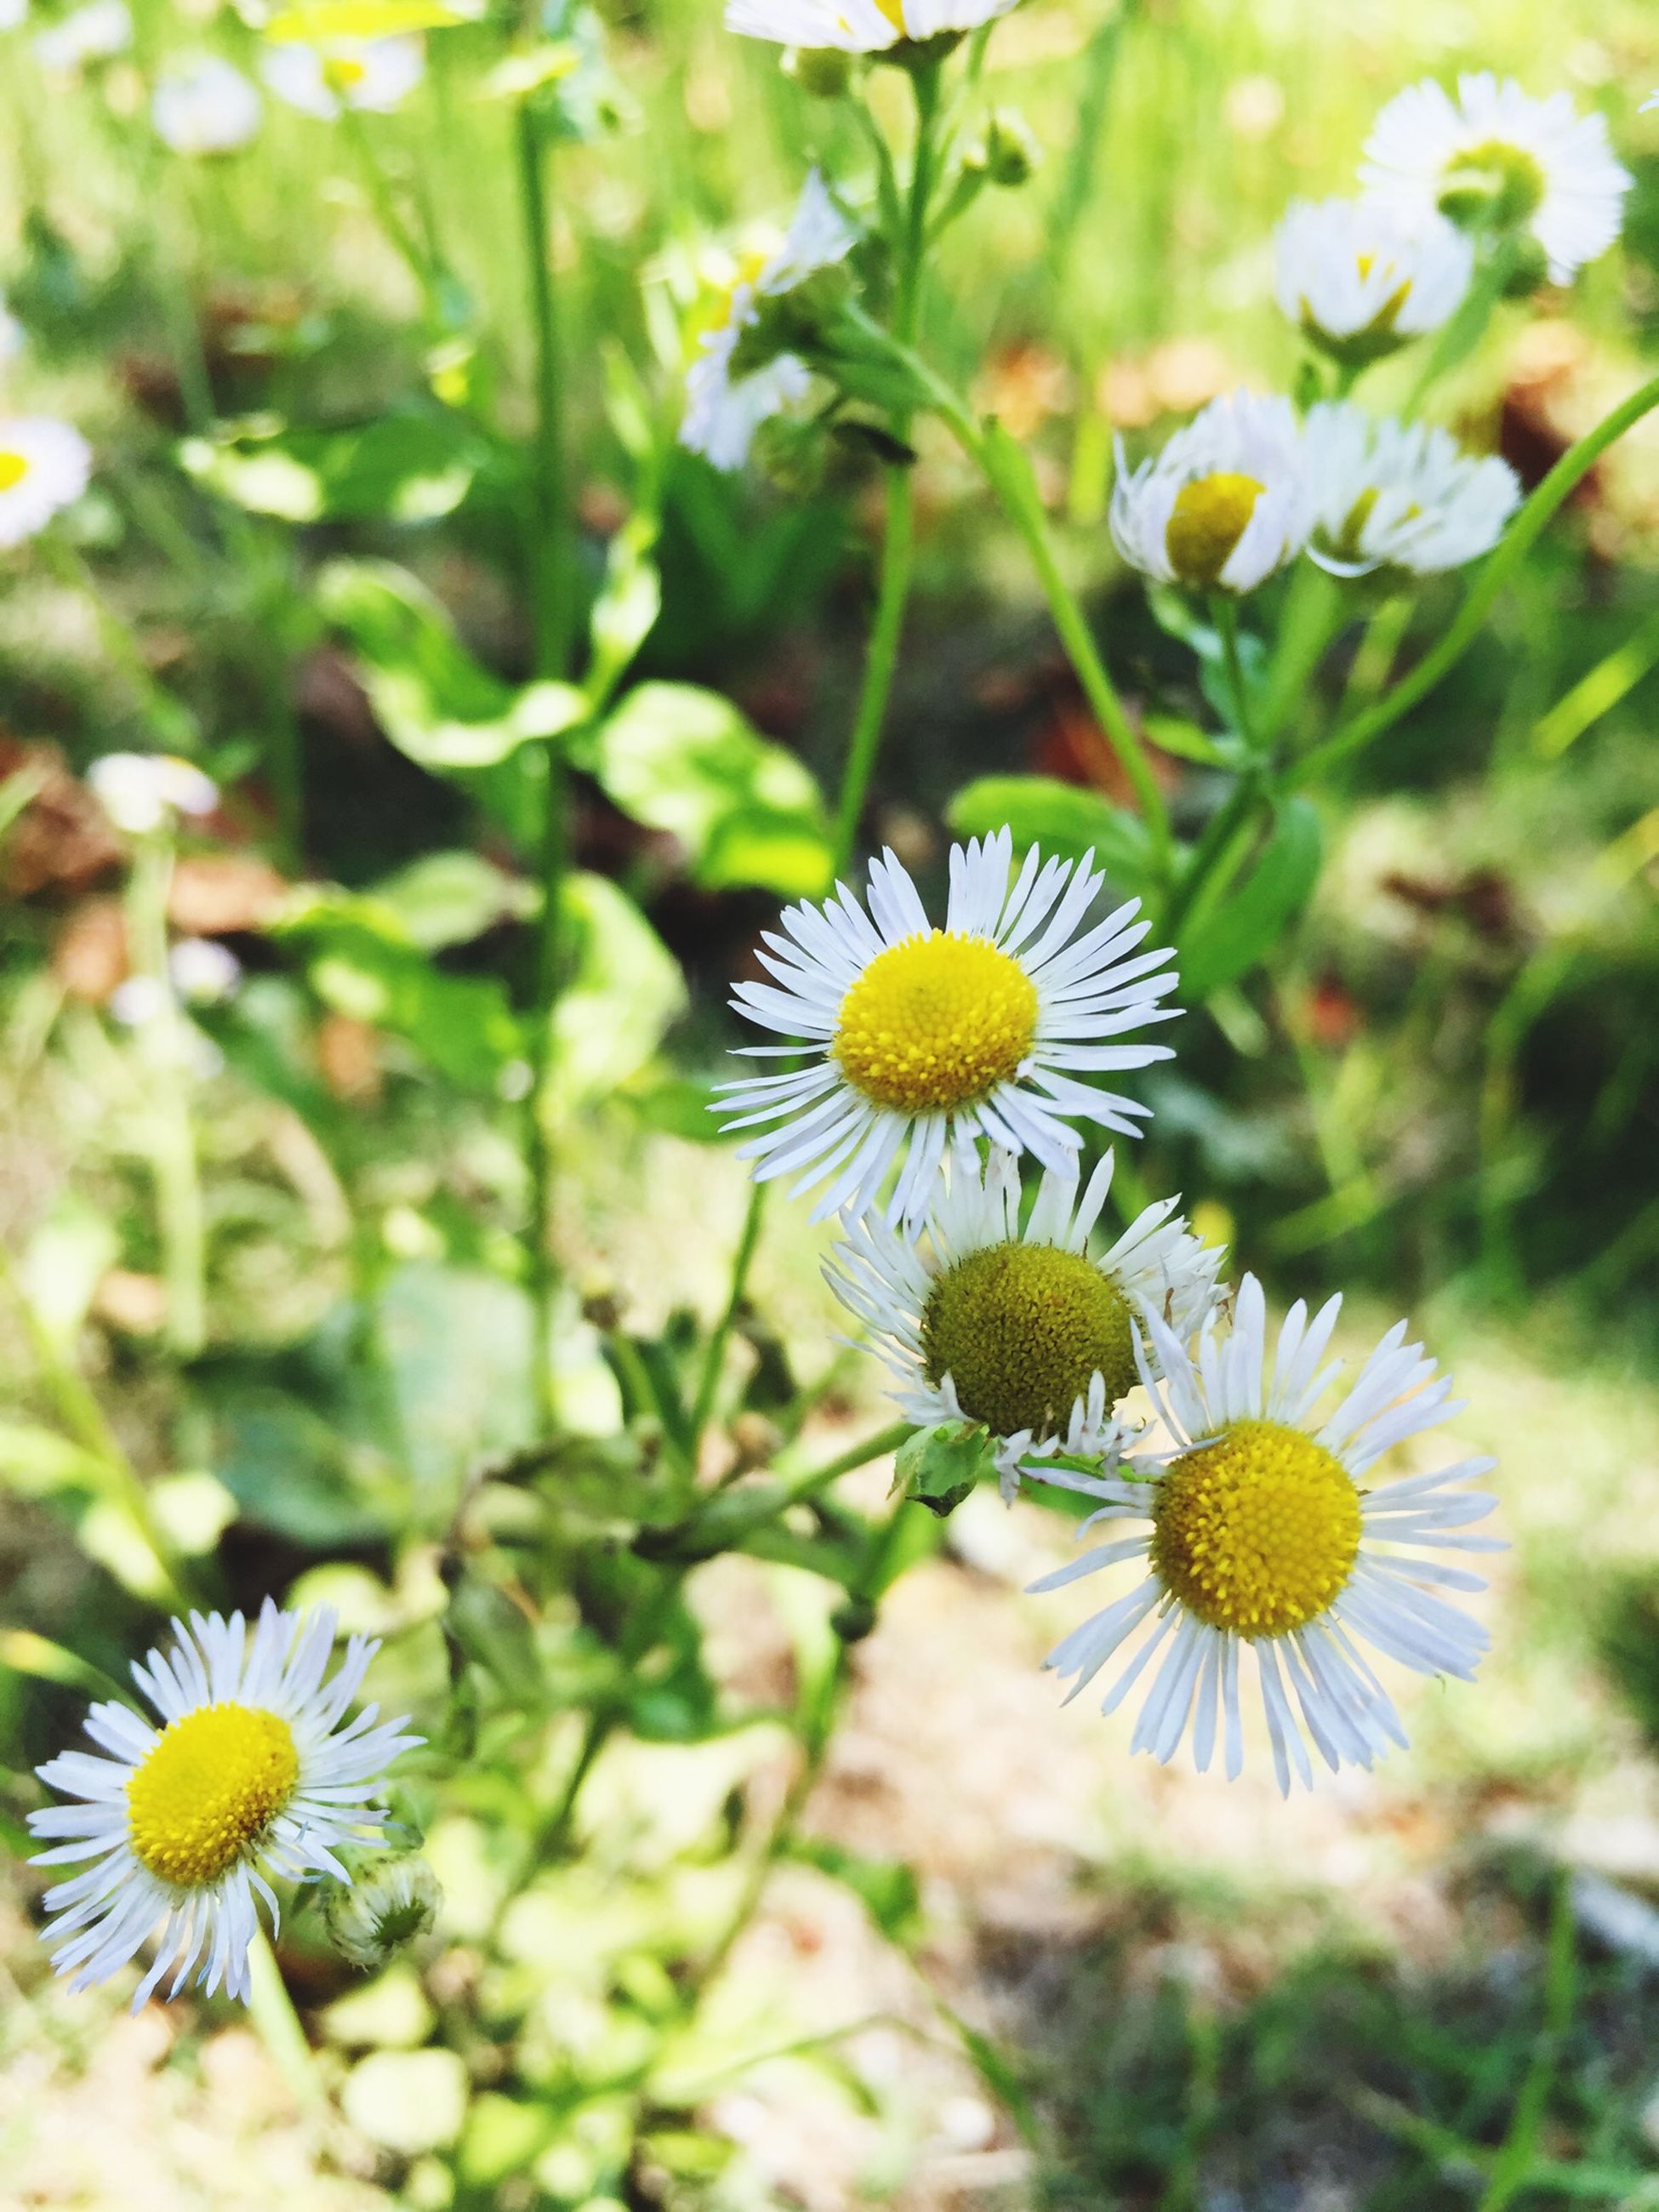 flower, freshness, petal, fragility, daisy, flower head, growth, pollen, beauty in nature, yellow, blooming, white color, focus on foreground, nature, plant, close-up, field, insect, high angle view, in bloom